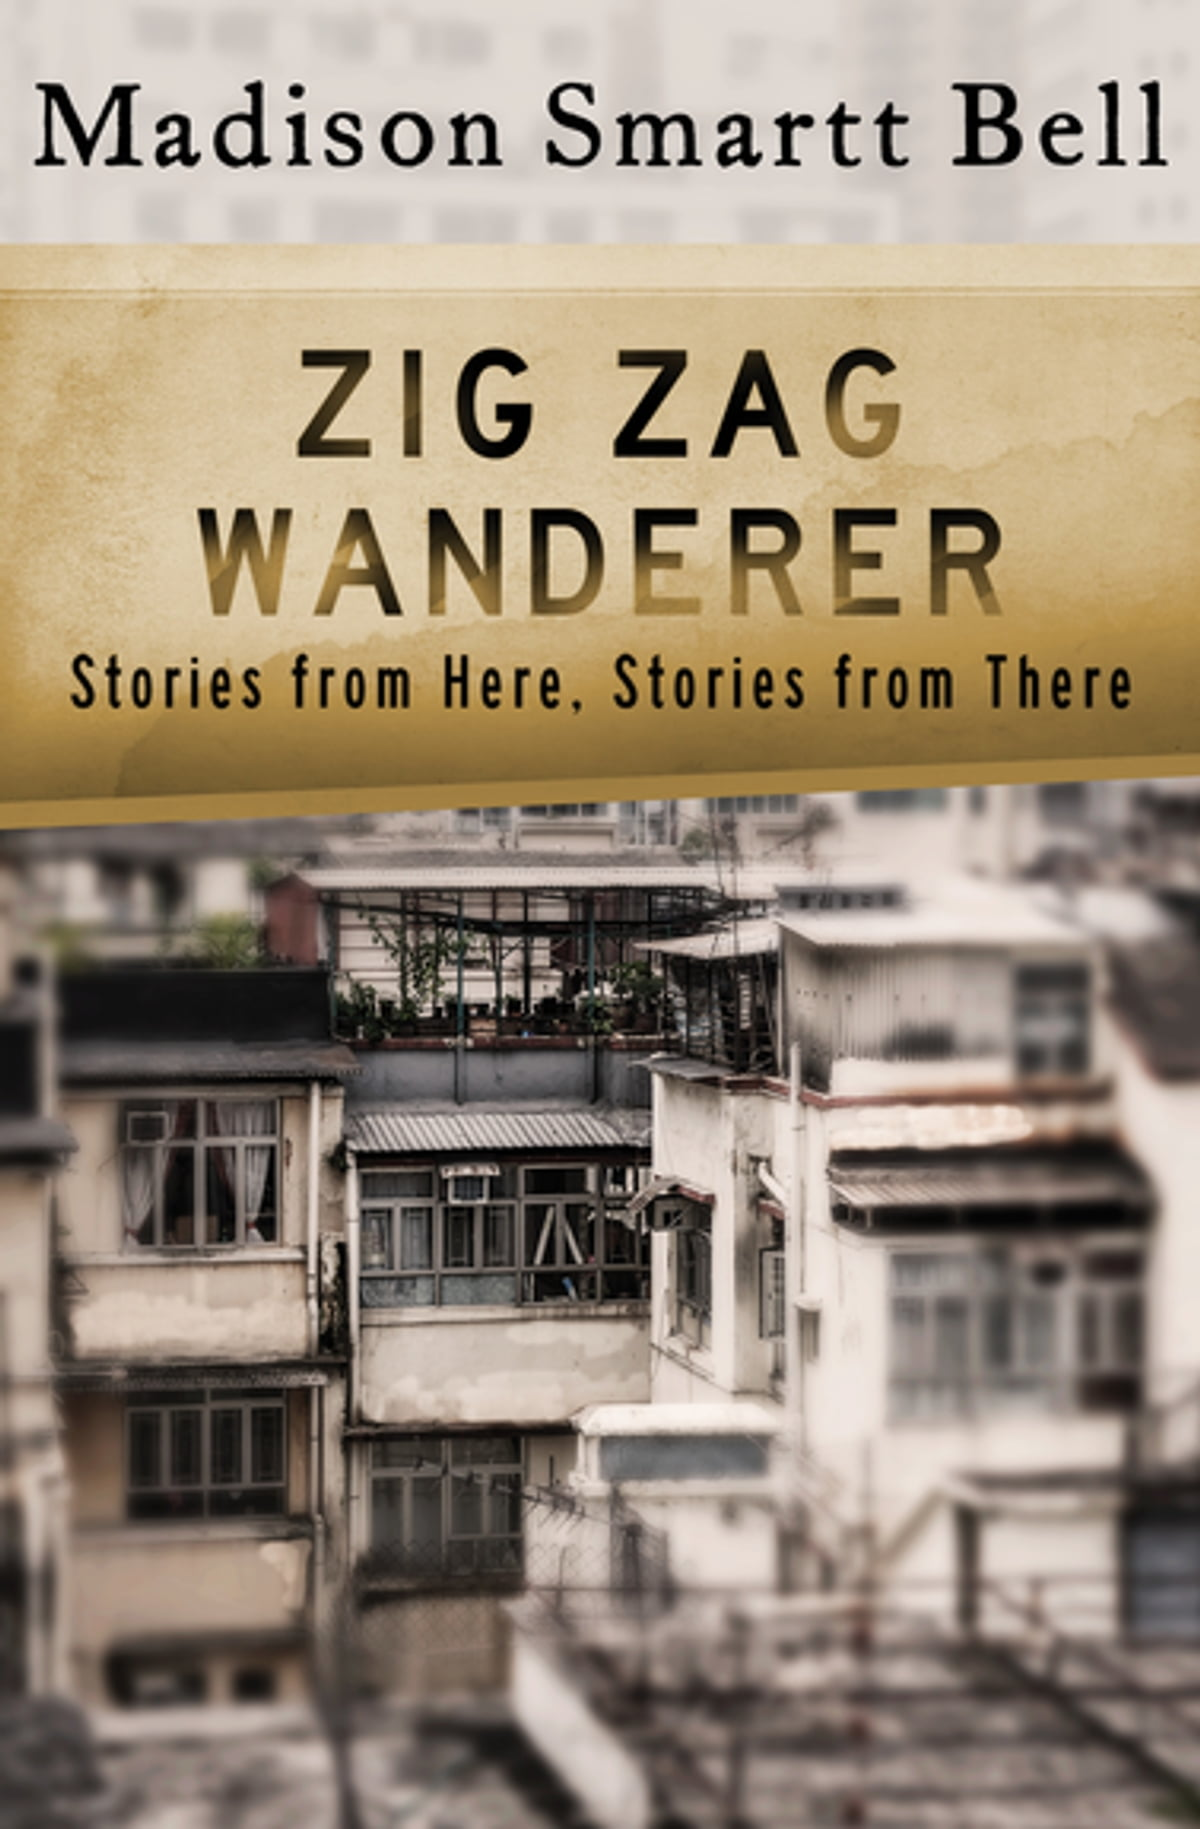 Madisons Central Library Today Heres >> Zig Zag Wanderer Ekitaplar By Madison Smartt Bell Rakuten Kobo